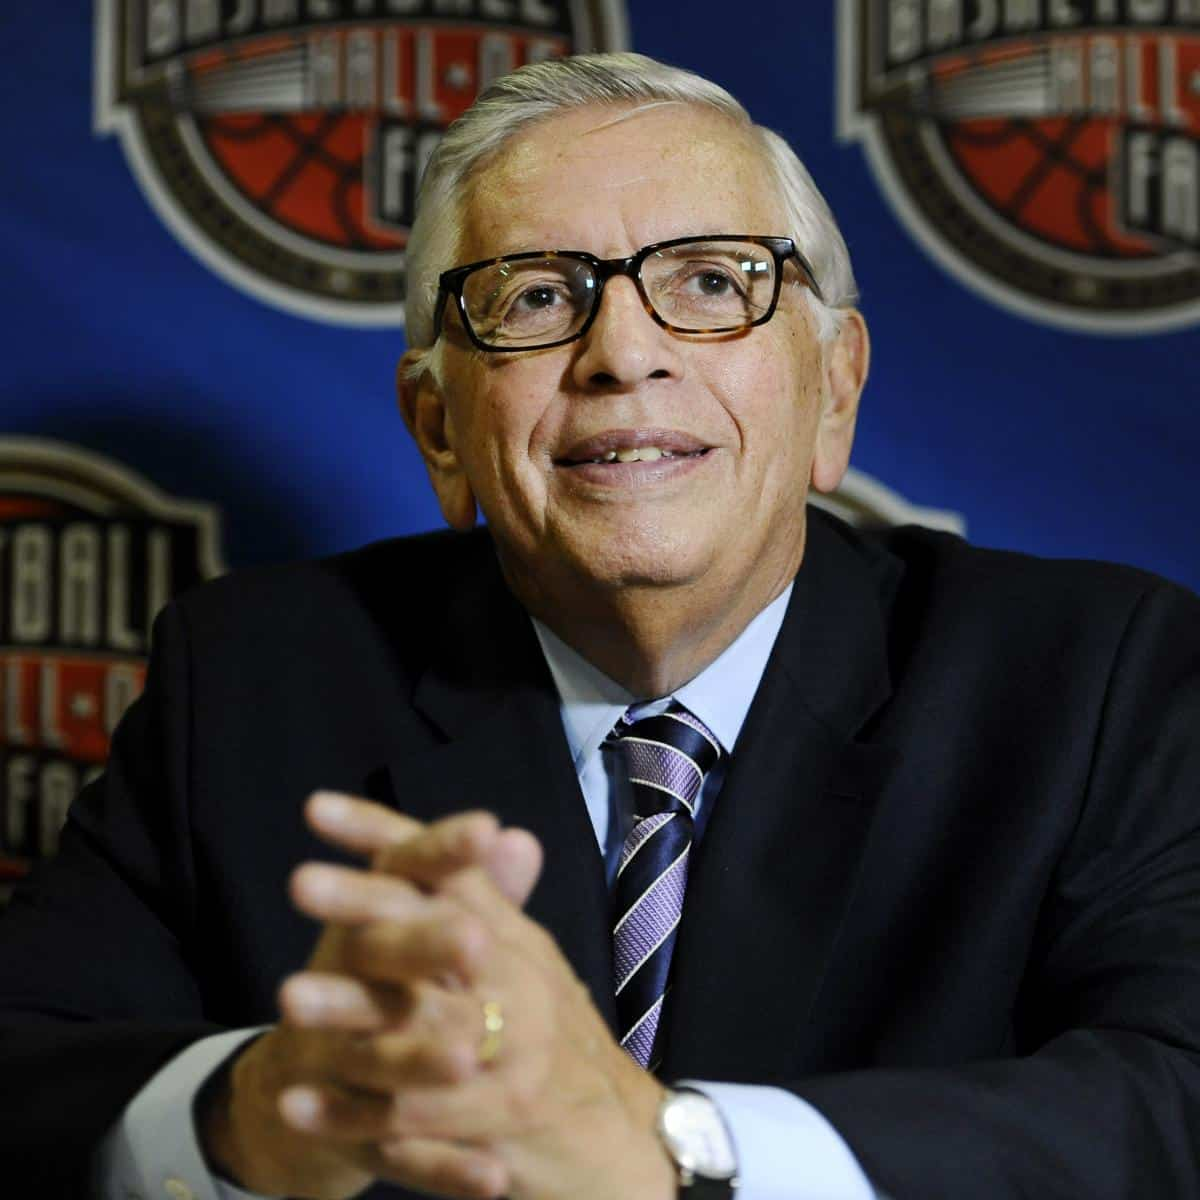 Former NBA Commissioner David Stern Dies at Age 77 After Brain Hemorrhage